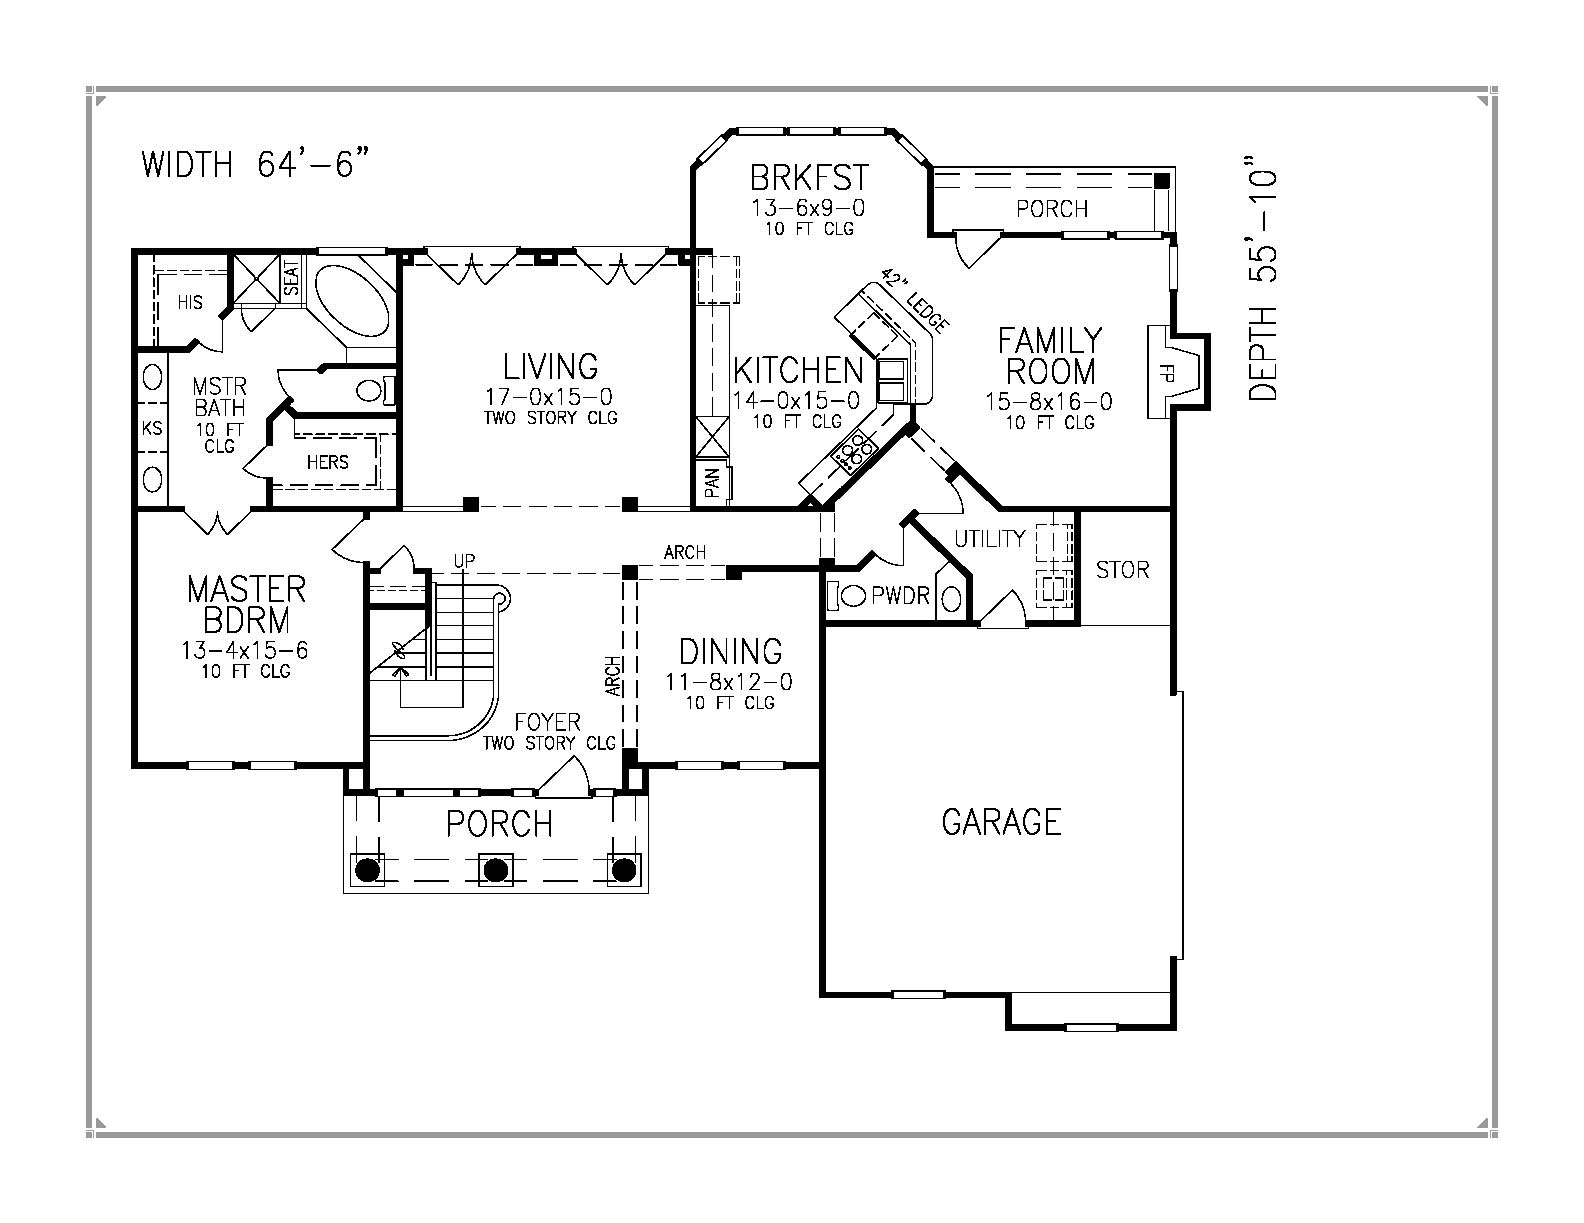 Weasley house floor plan Home design and style – The Waltons House Floor Plan